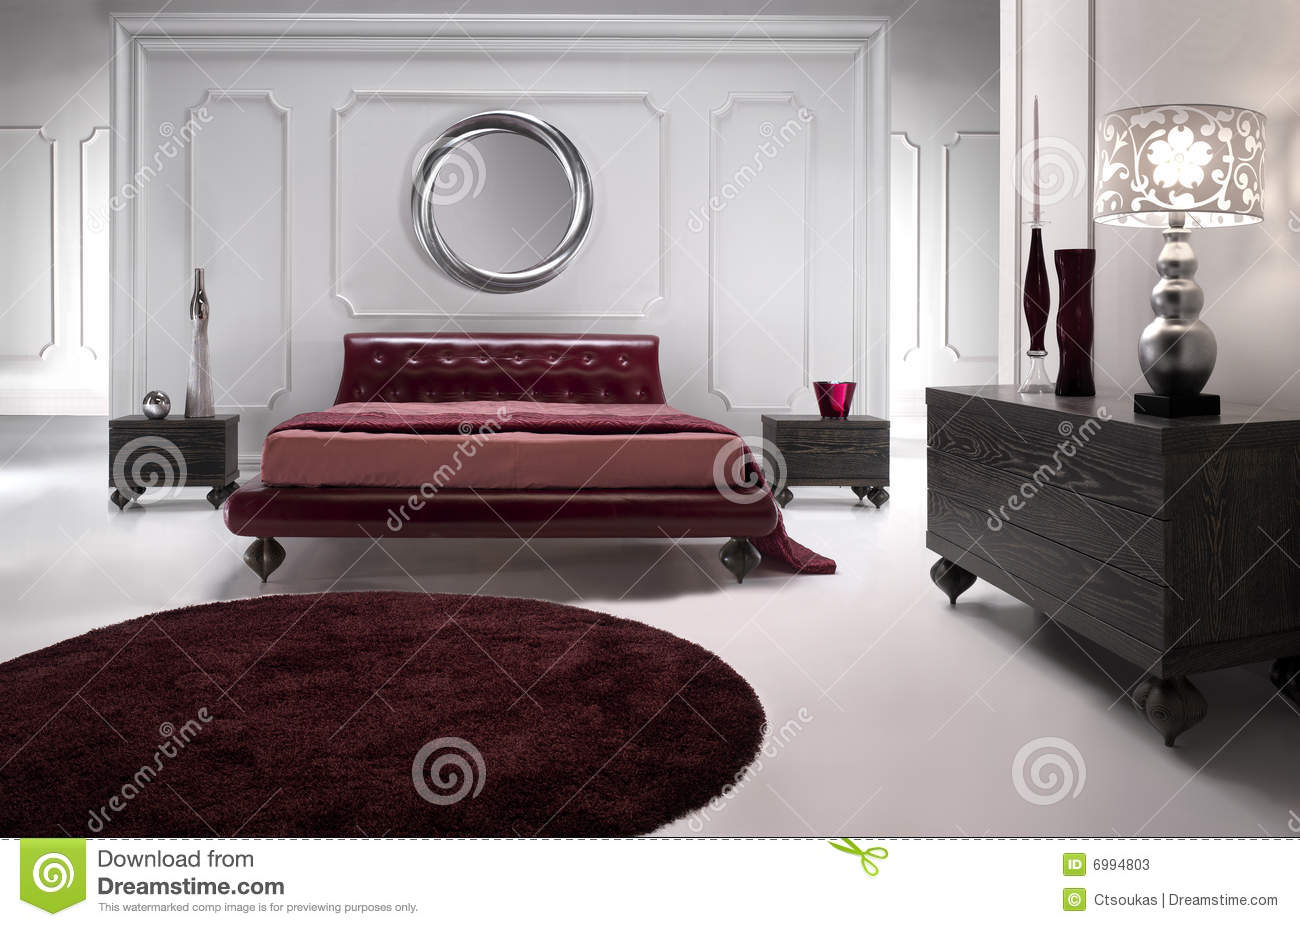 chambre coucher en cuir rouge luxueuse image stock image du inside d coratif 6994803. Black Bedroom Furniture Sets. Home Design Ideas